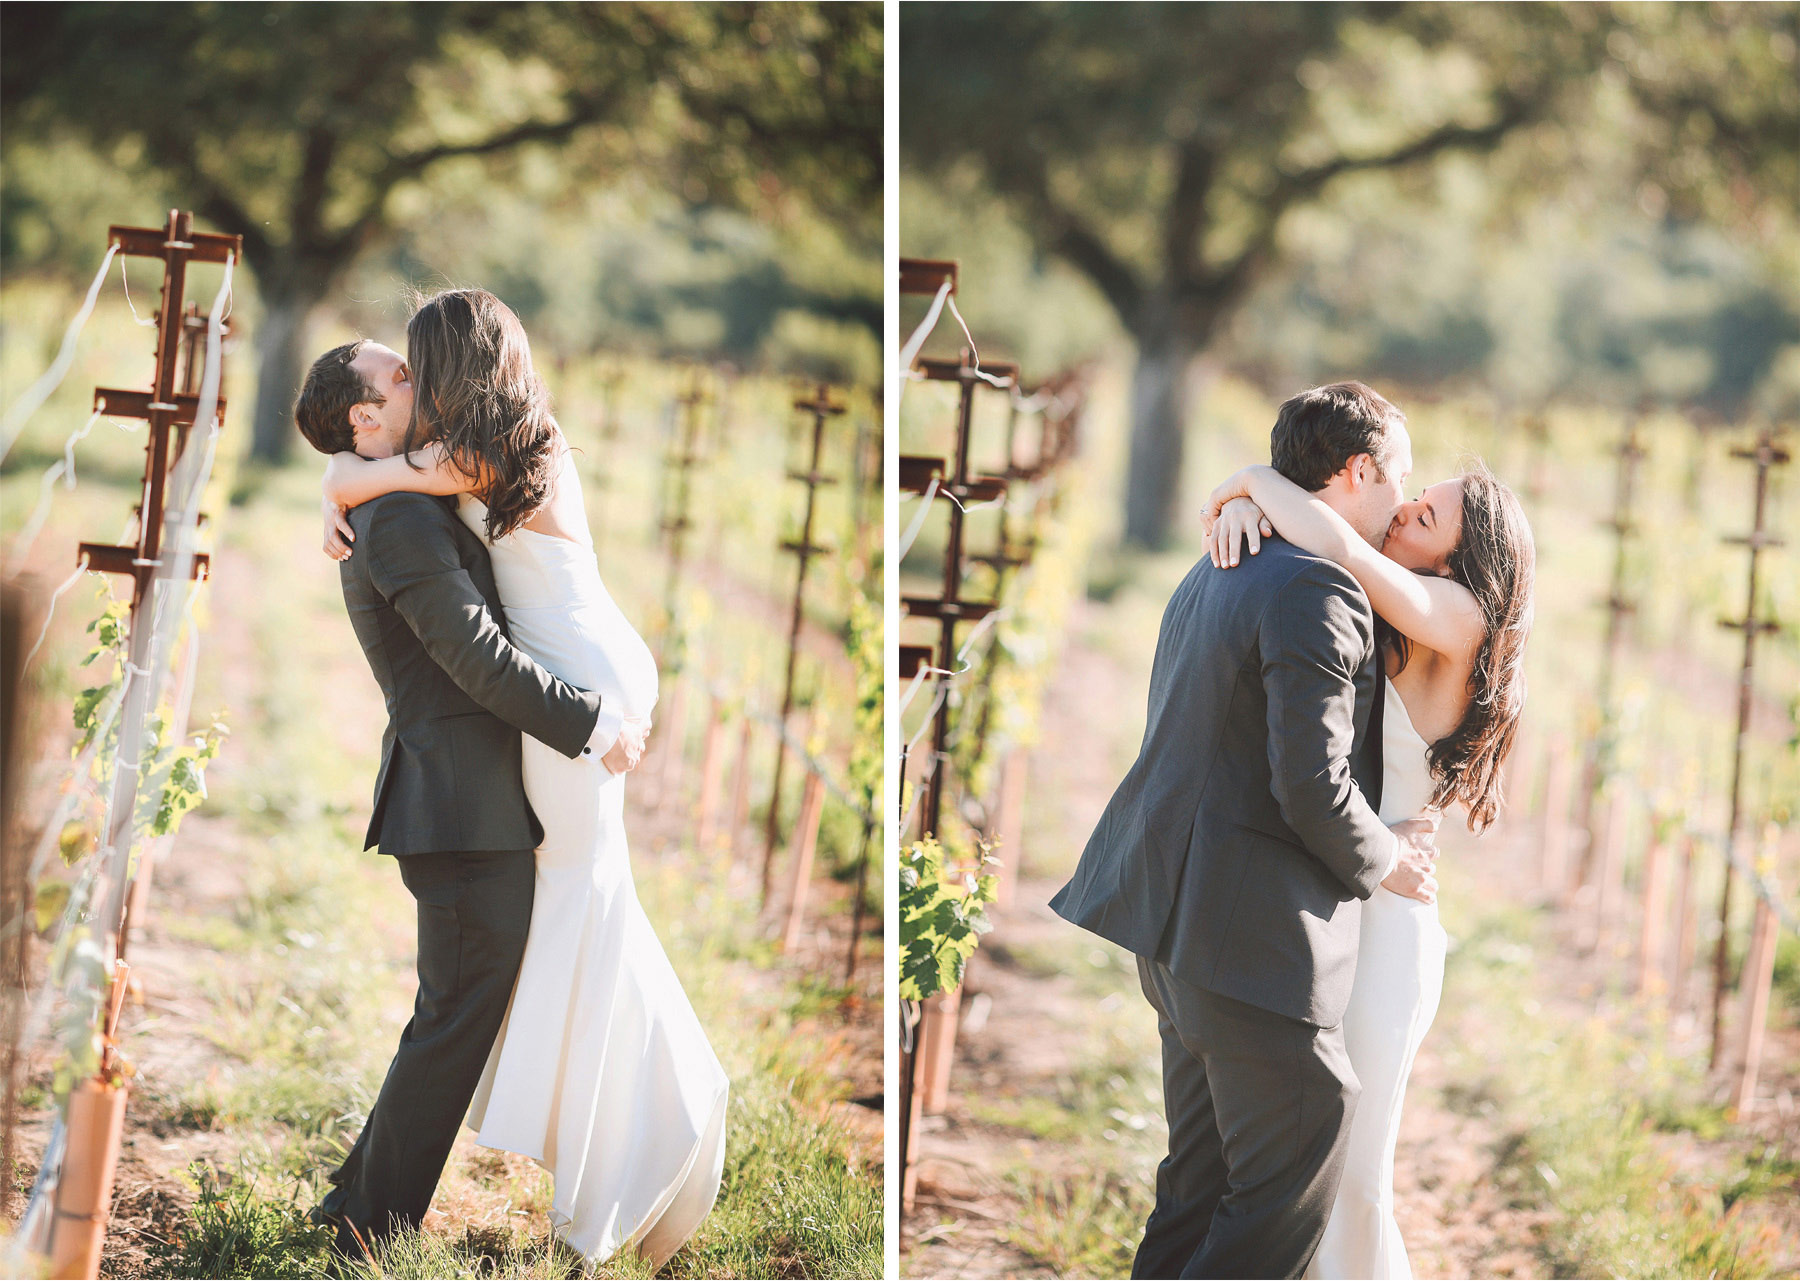 20-Napa-California-Wedding-Photographer-by-Andrew-Vick-Photography-Spring-Destination-Carneros-Resort-and-Spa-Bride-Groom-Vineyard-Winery-Kiss-Lift-Vintage-Alex-and-Roger.jpg